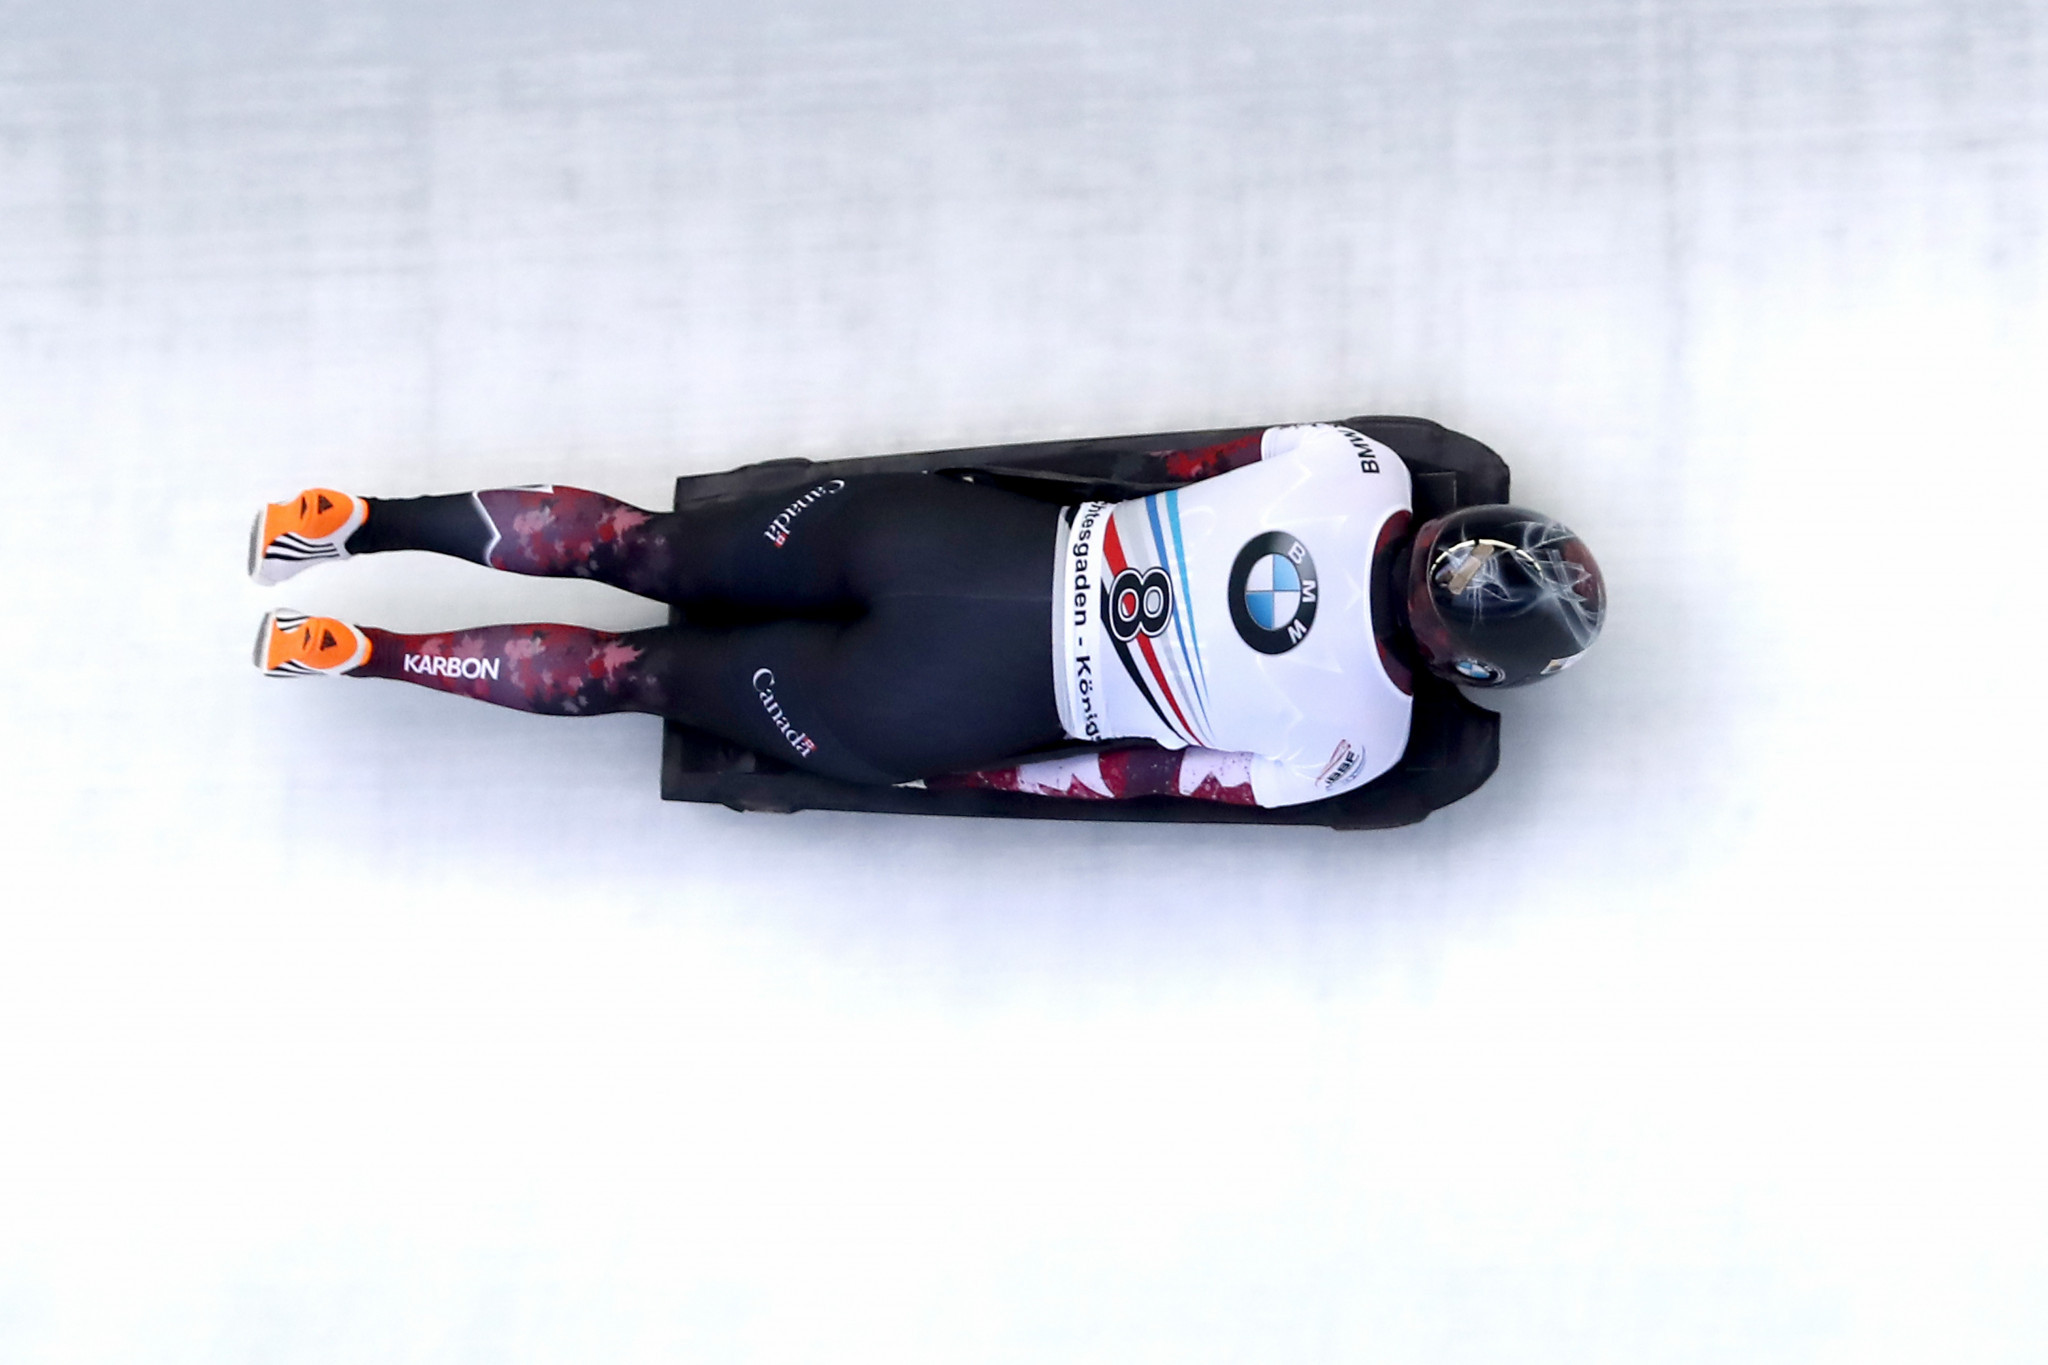 Vathje and Martineau win gold medals at Canadian National Skeleton Championships